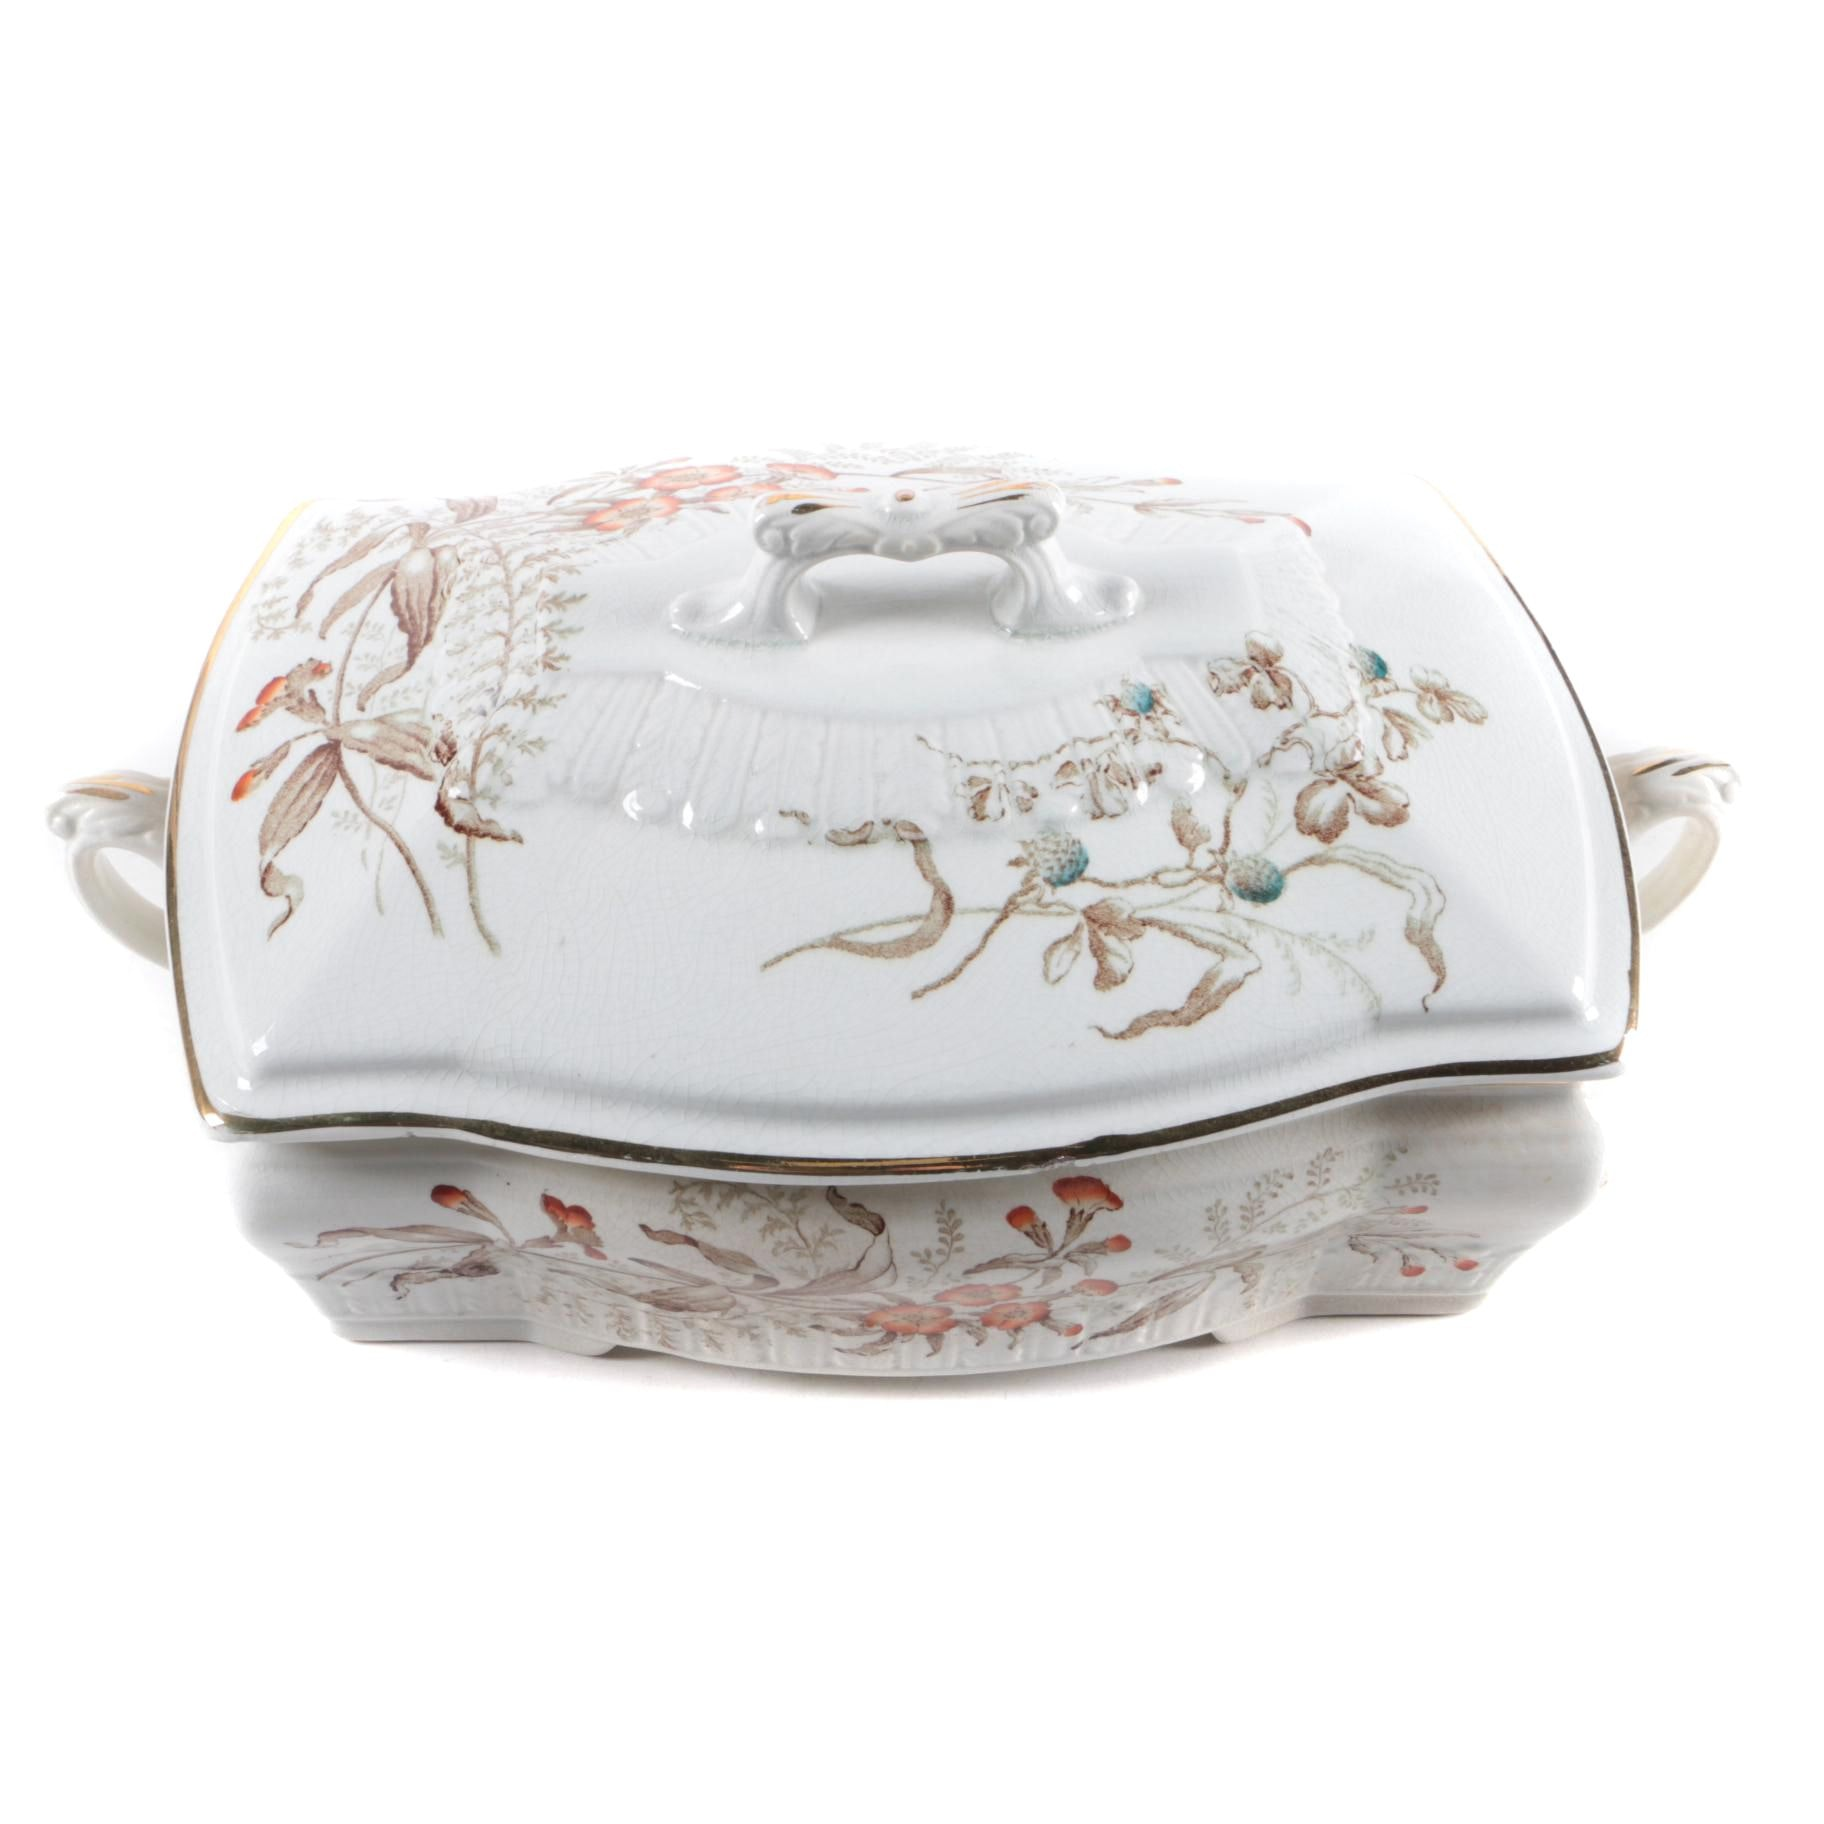 1887 Edwards Brothers English Transferware Covered Serving Dish